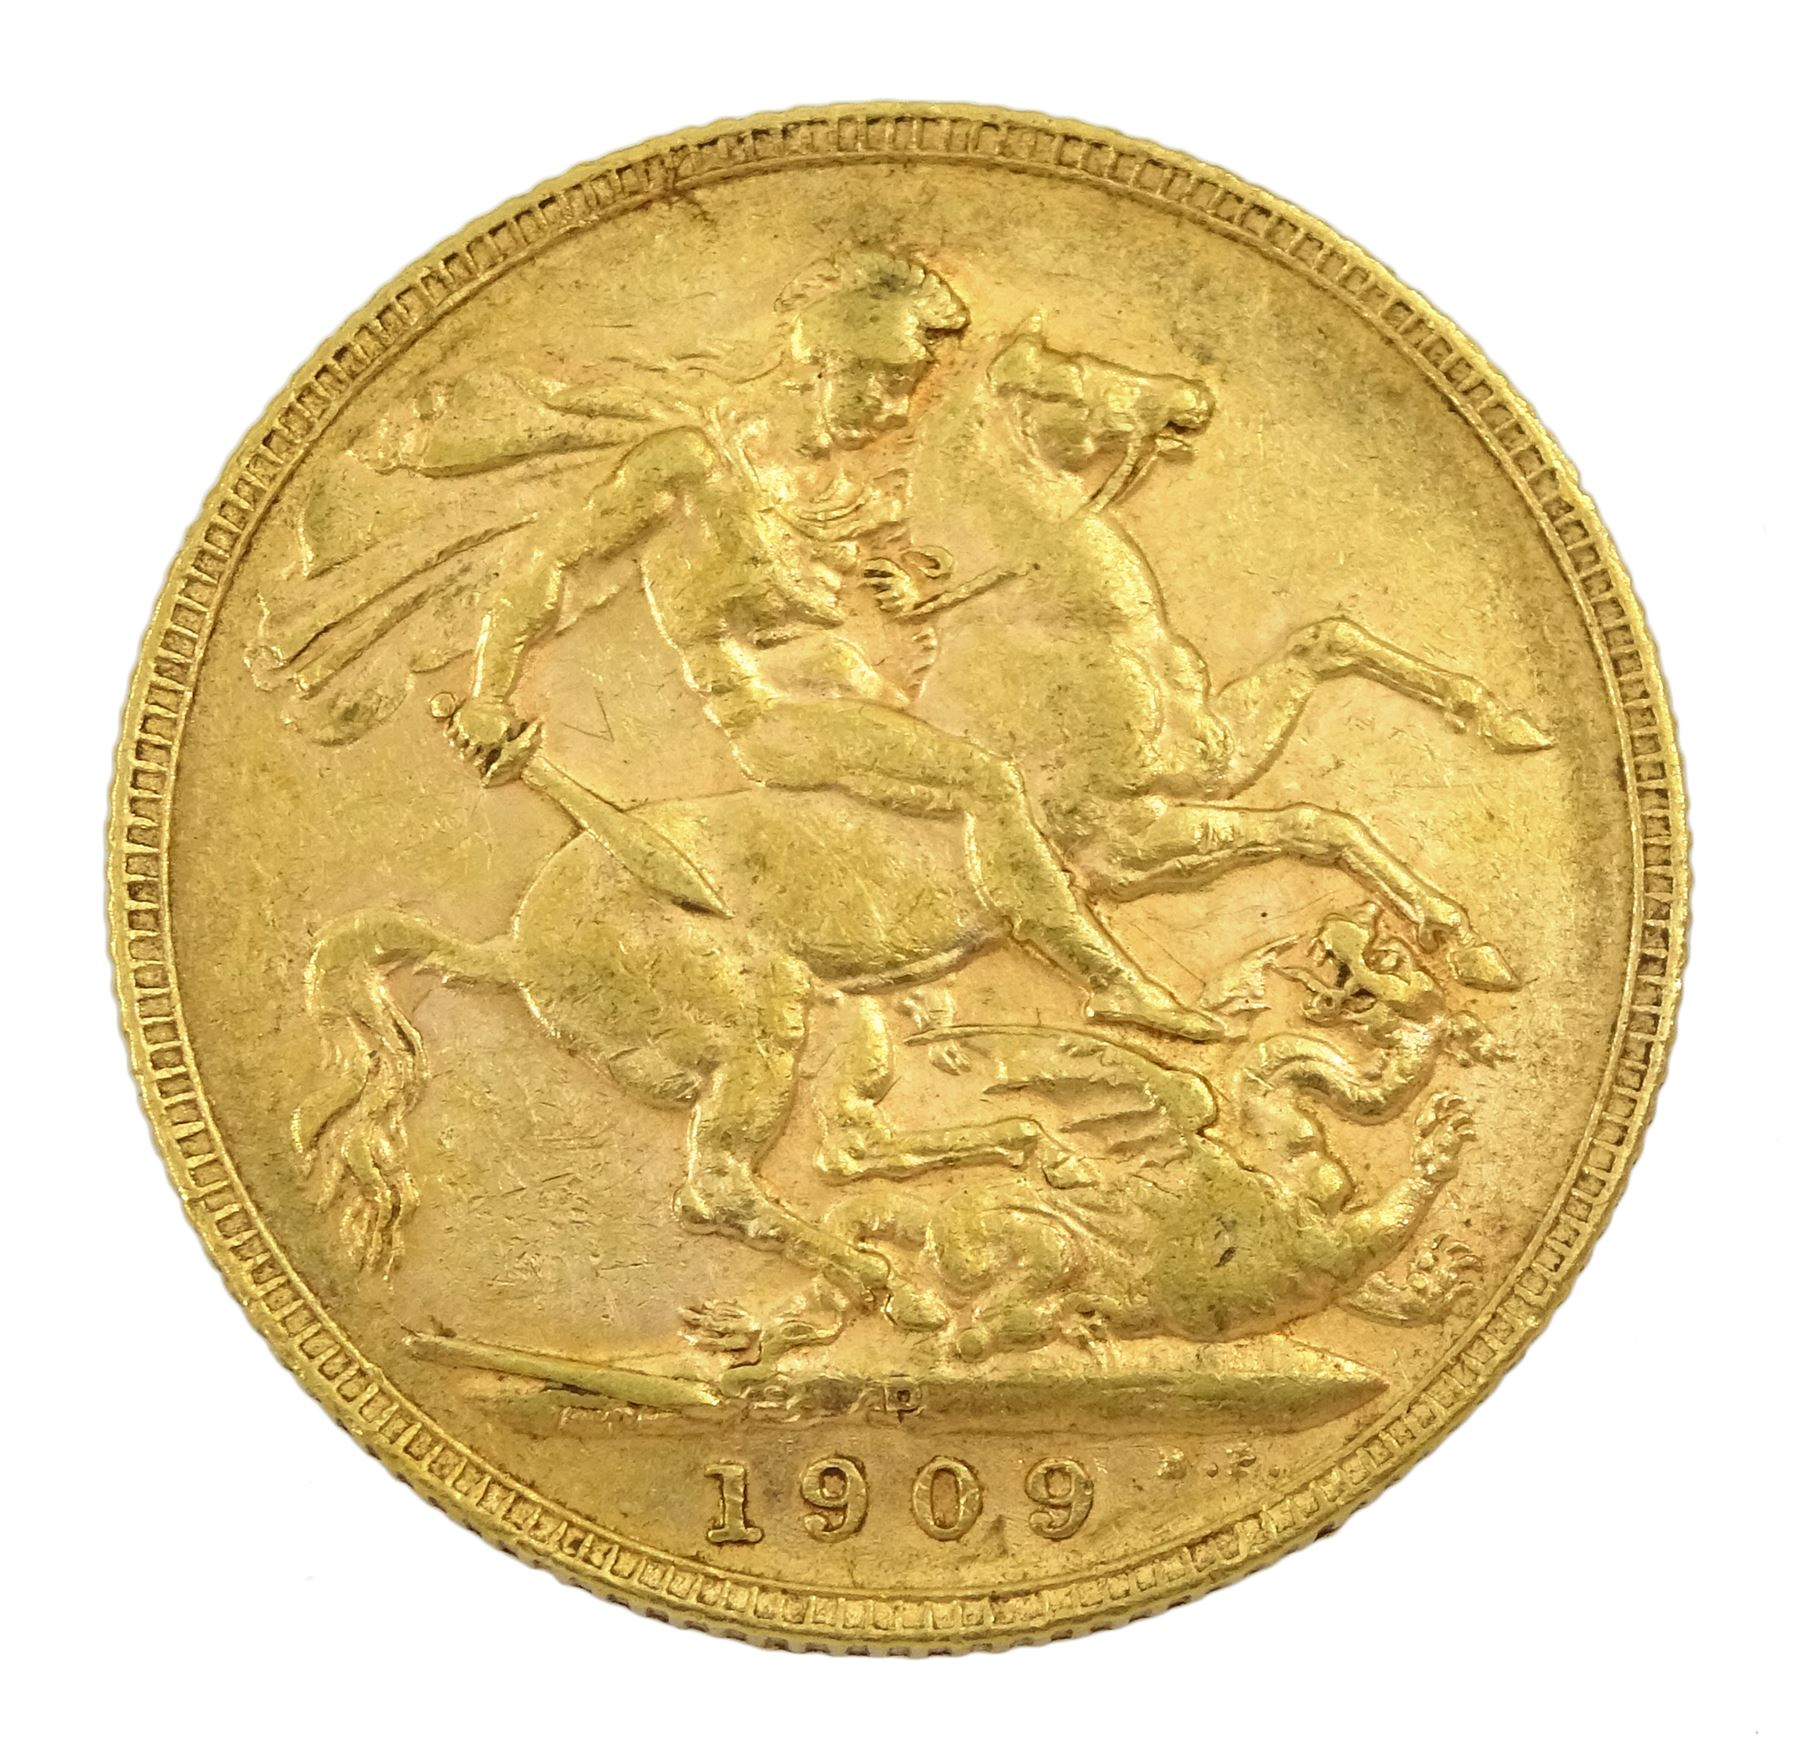 King Edward VII 1909 gold full sovereign coin - Image 2 of 2